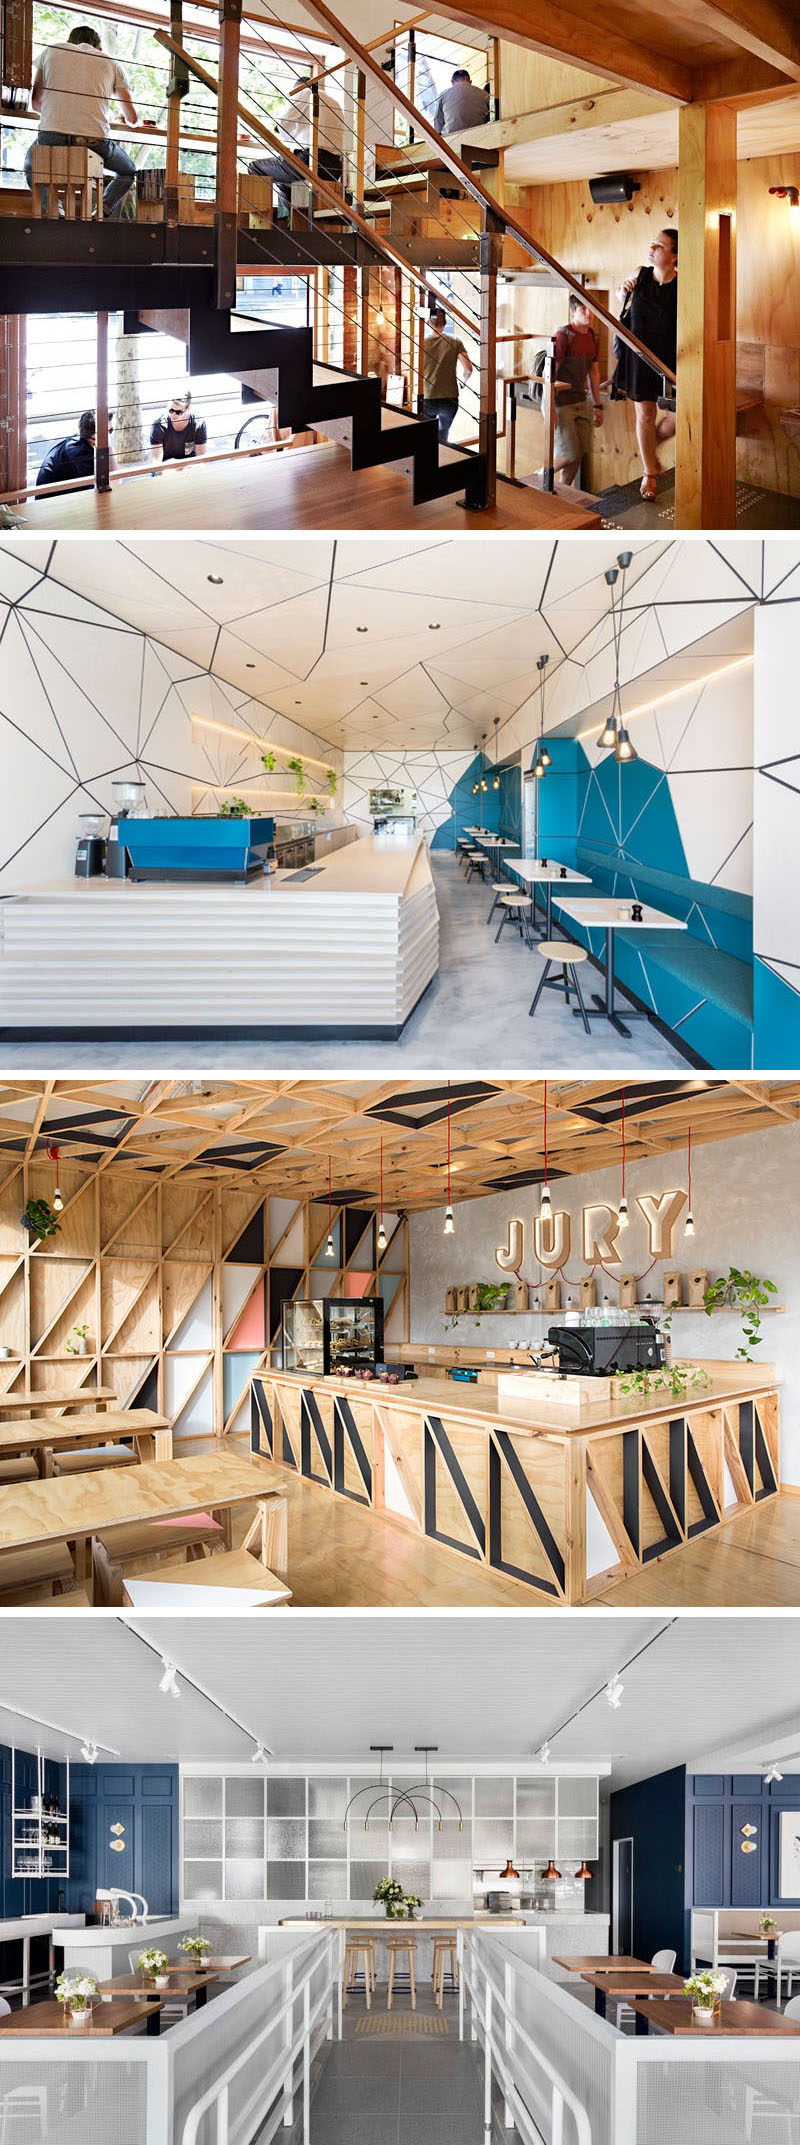 We've put together a list of 9 unique modern coffee shops and cafes that can be found in Australia and New Zealand.